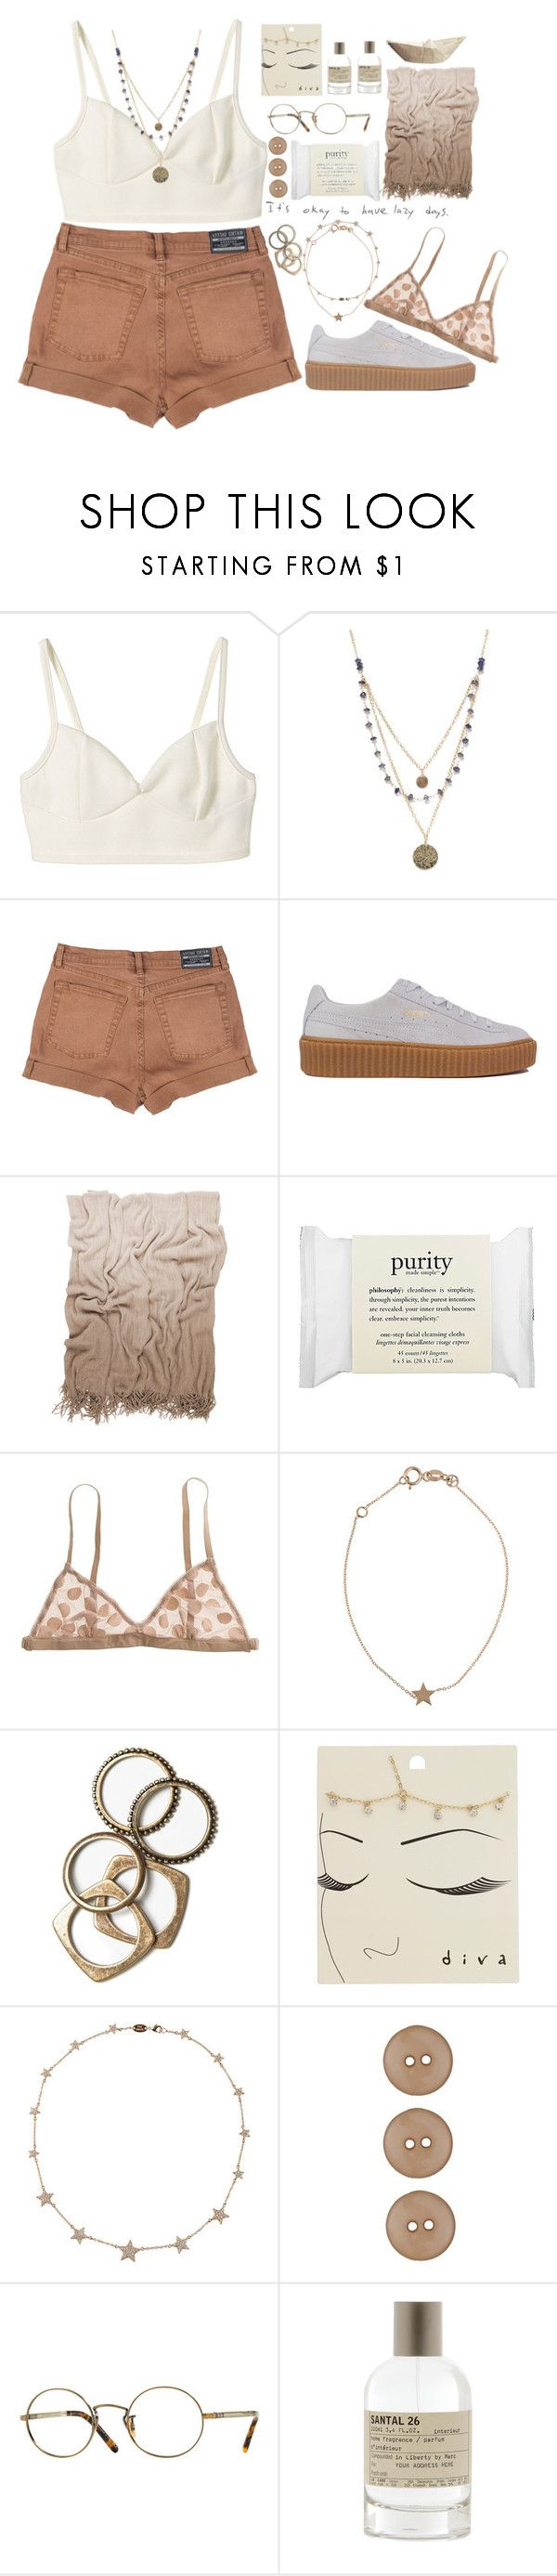 """""""let her go"""" by afrociucci13 ❤ liked on Polyvore featuring Alicia Marilyn Designs, MTWTFSS Weekday, Puma, Moltex, philosophy, Madewell, Kismet, Rachel Leigh, Miss Selfridge and Lee Angel Jewelry"""